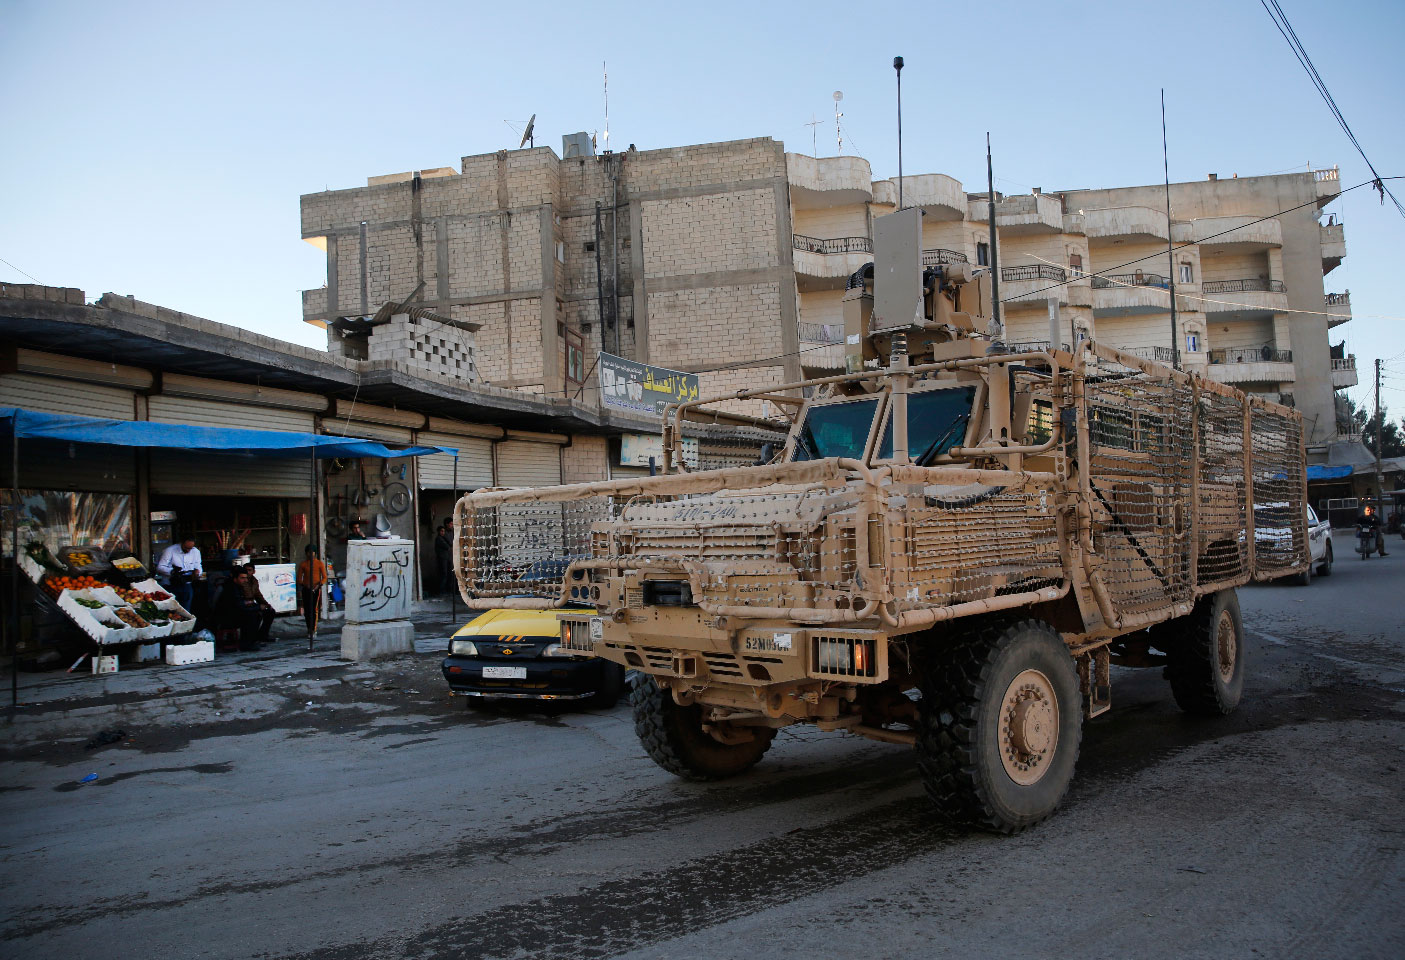 A vehicle of US troops passing on a street, in Manbij town, north Syria on March 31, 2018.